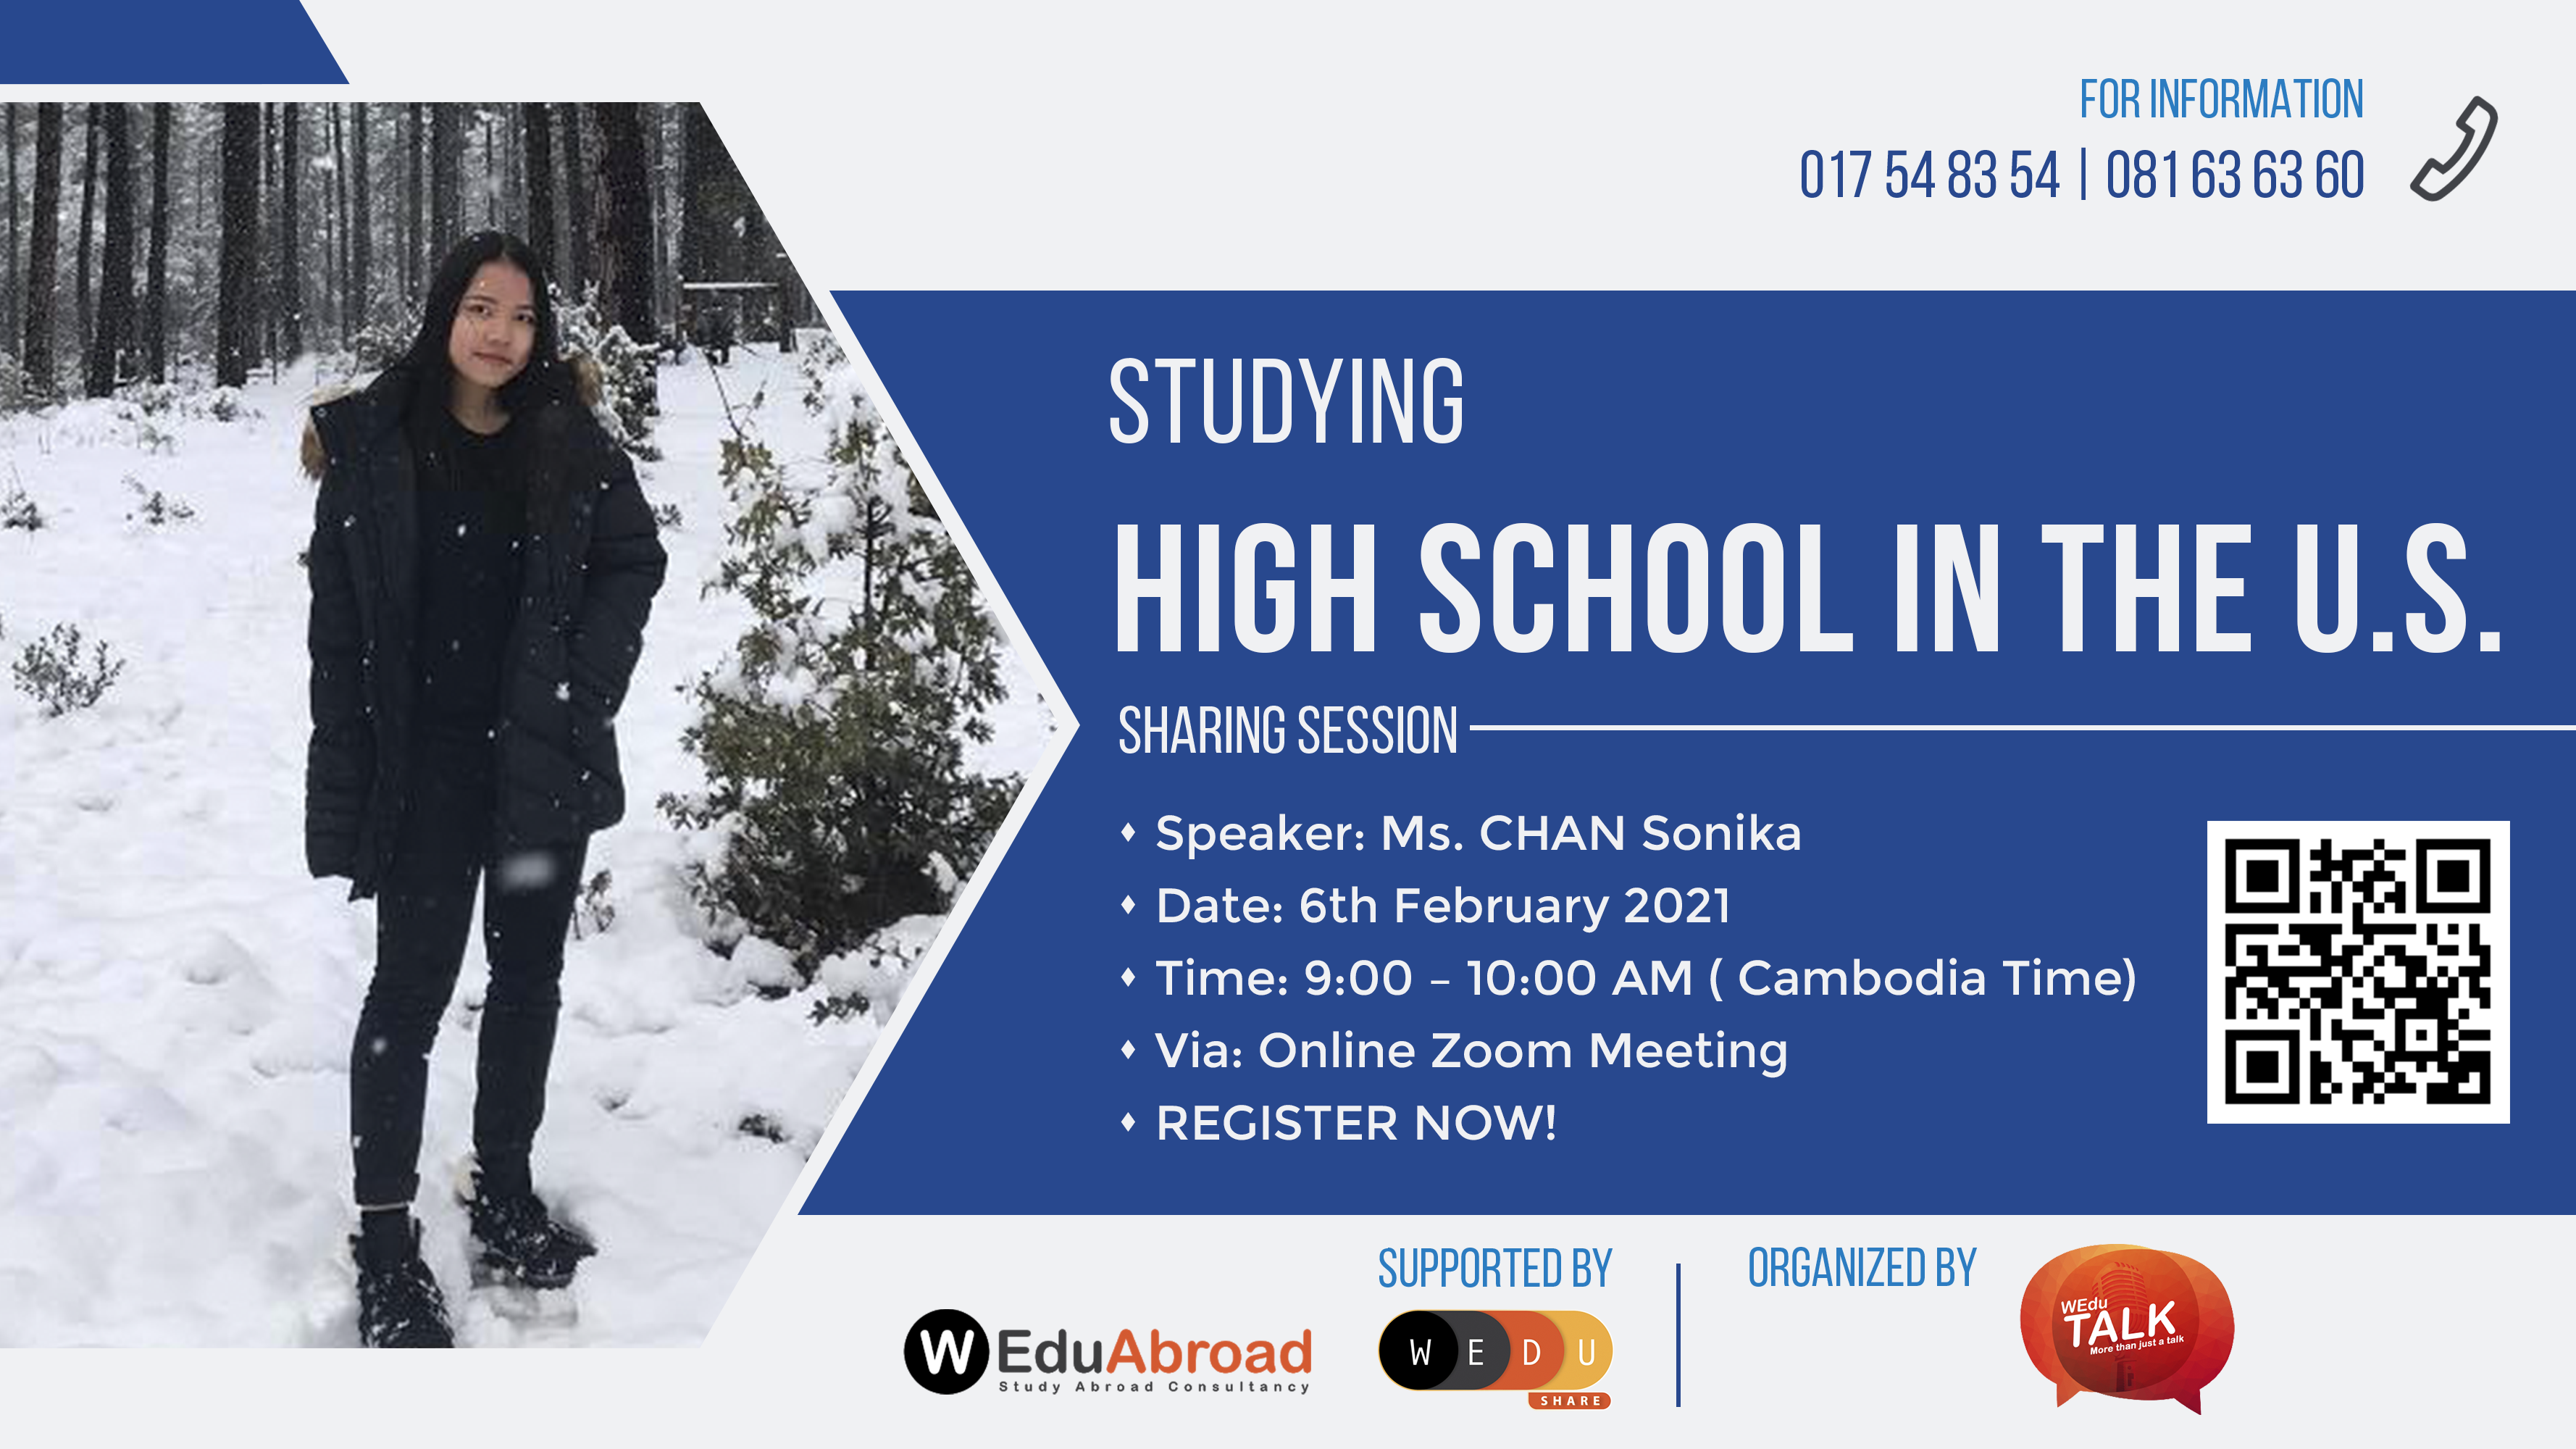 Studying High School in The U.S. Sharing Session